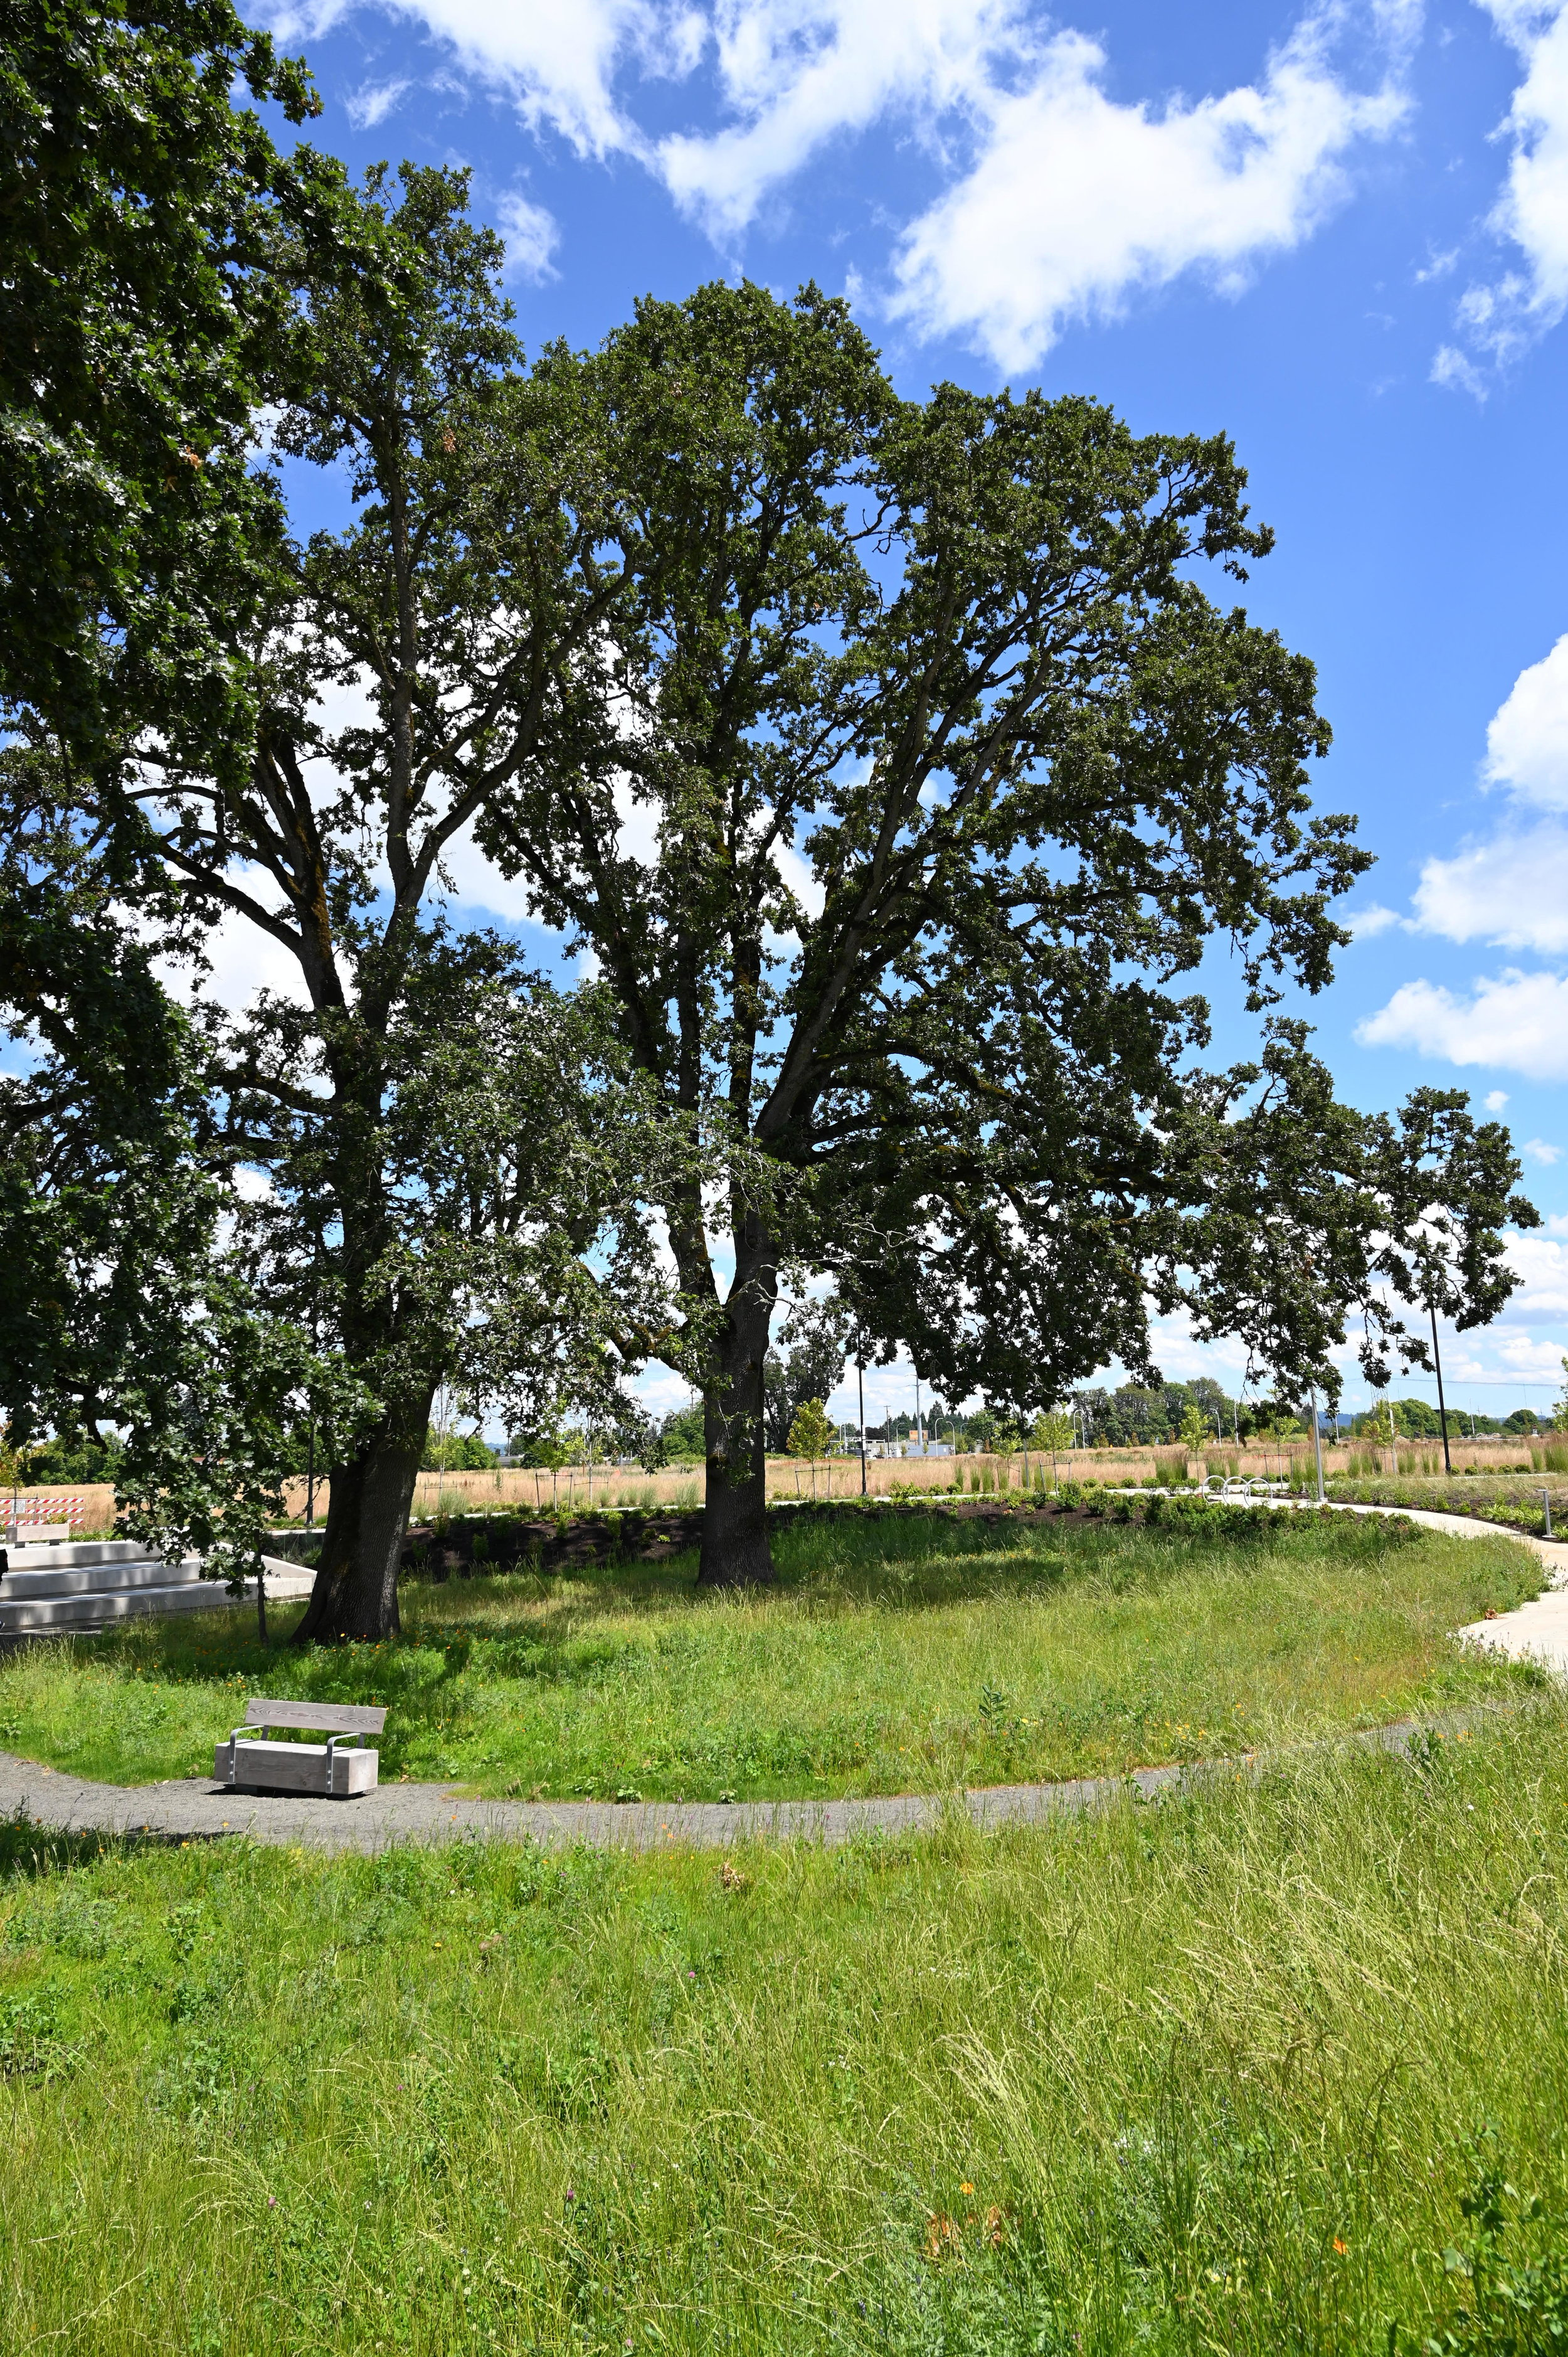 Oak trees in a meadow ringed by a trail with wooden benches on a sunny day